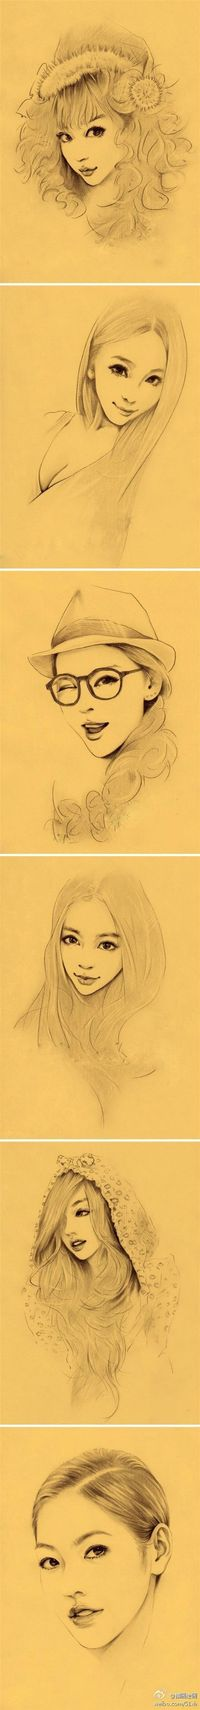 Lovely sketches.